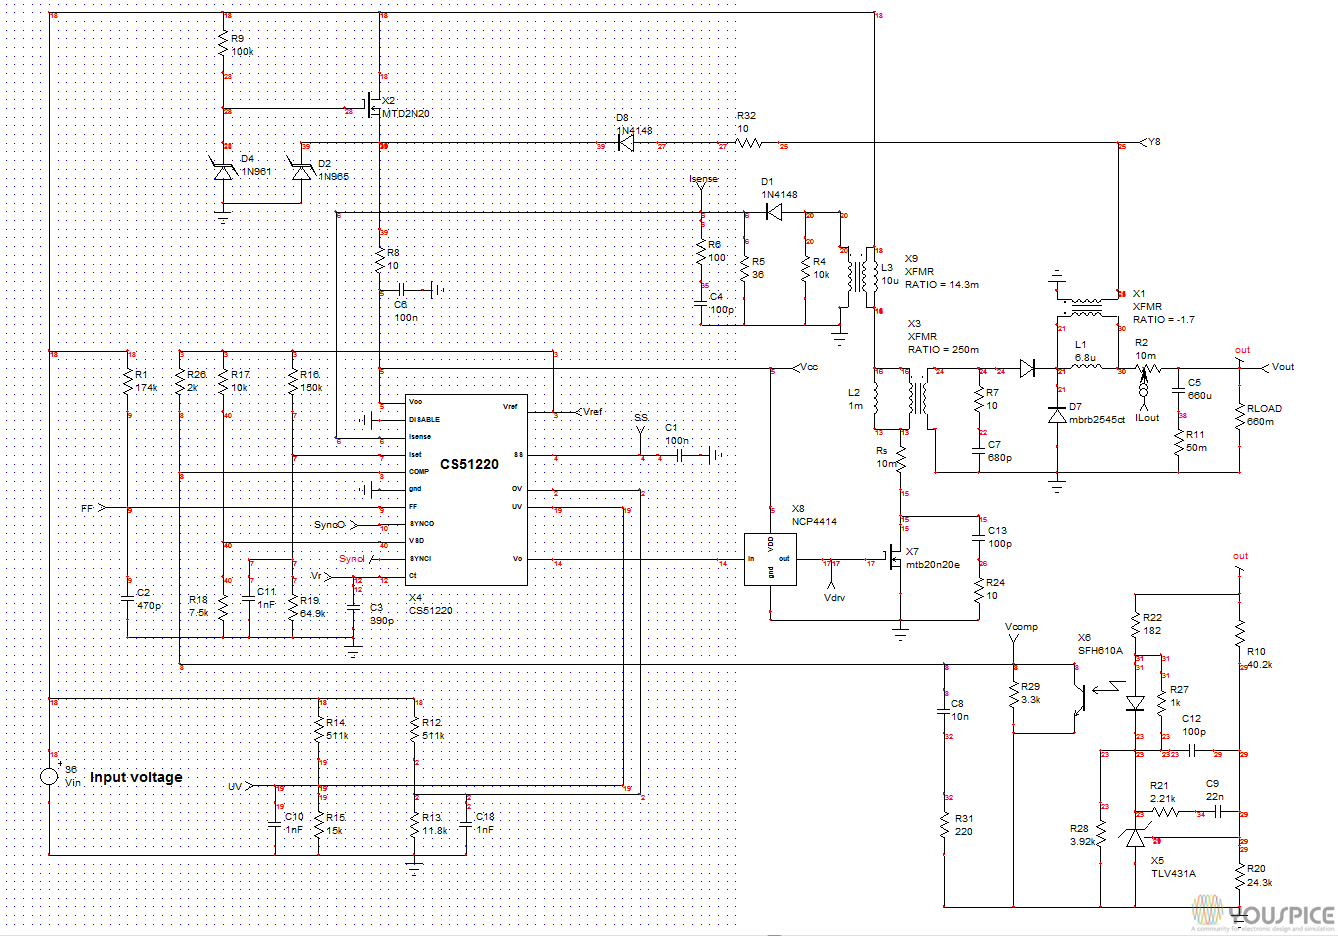 6300a Converter Diagram Custom Project Wiring Magnetek Power 3200 Parallax 7300 Supply Rv Electrical